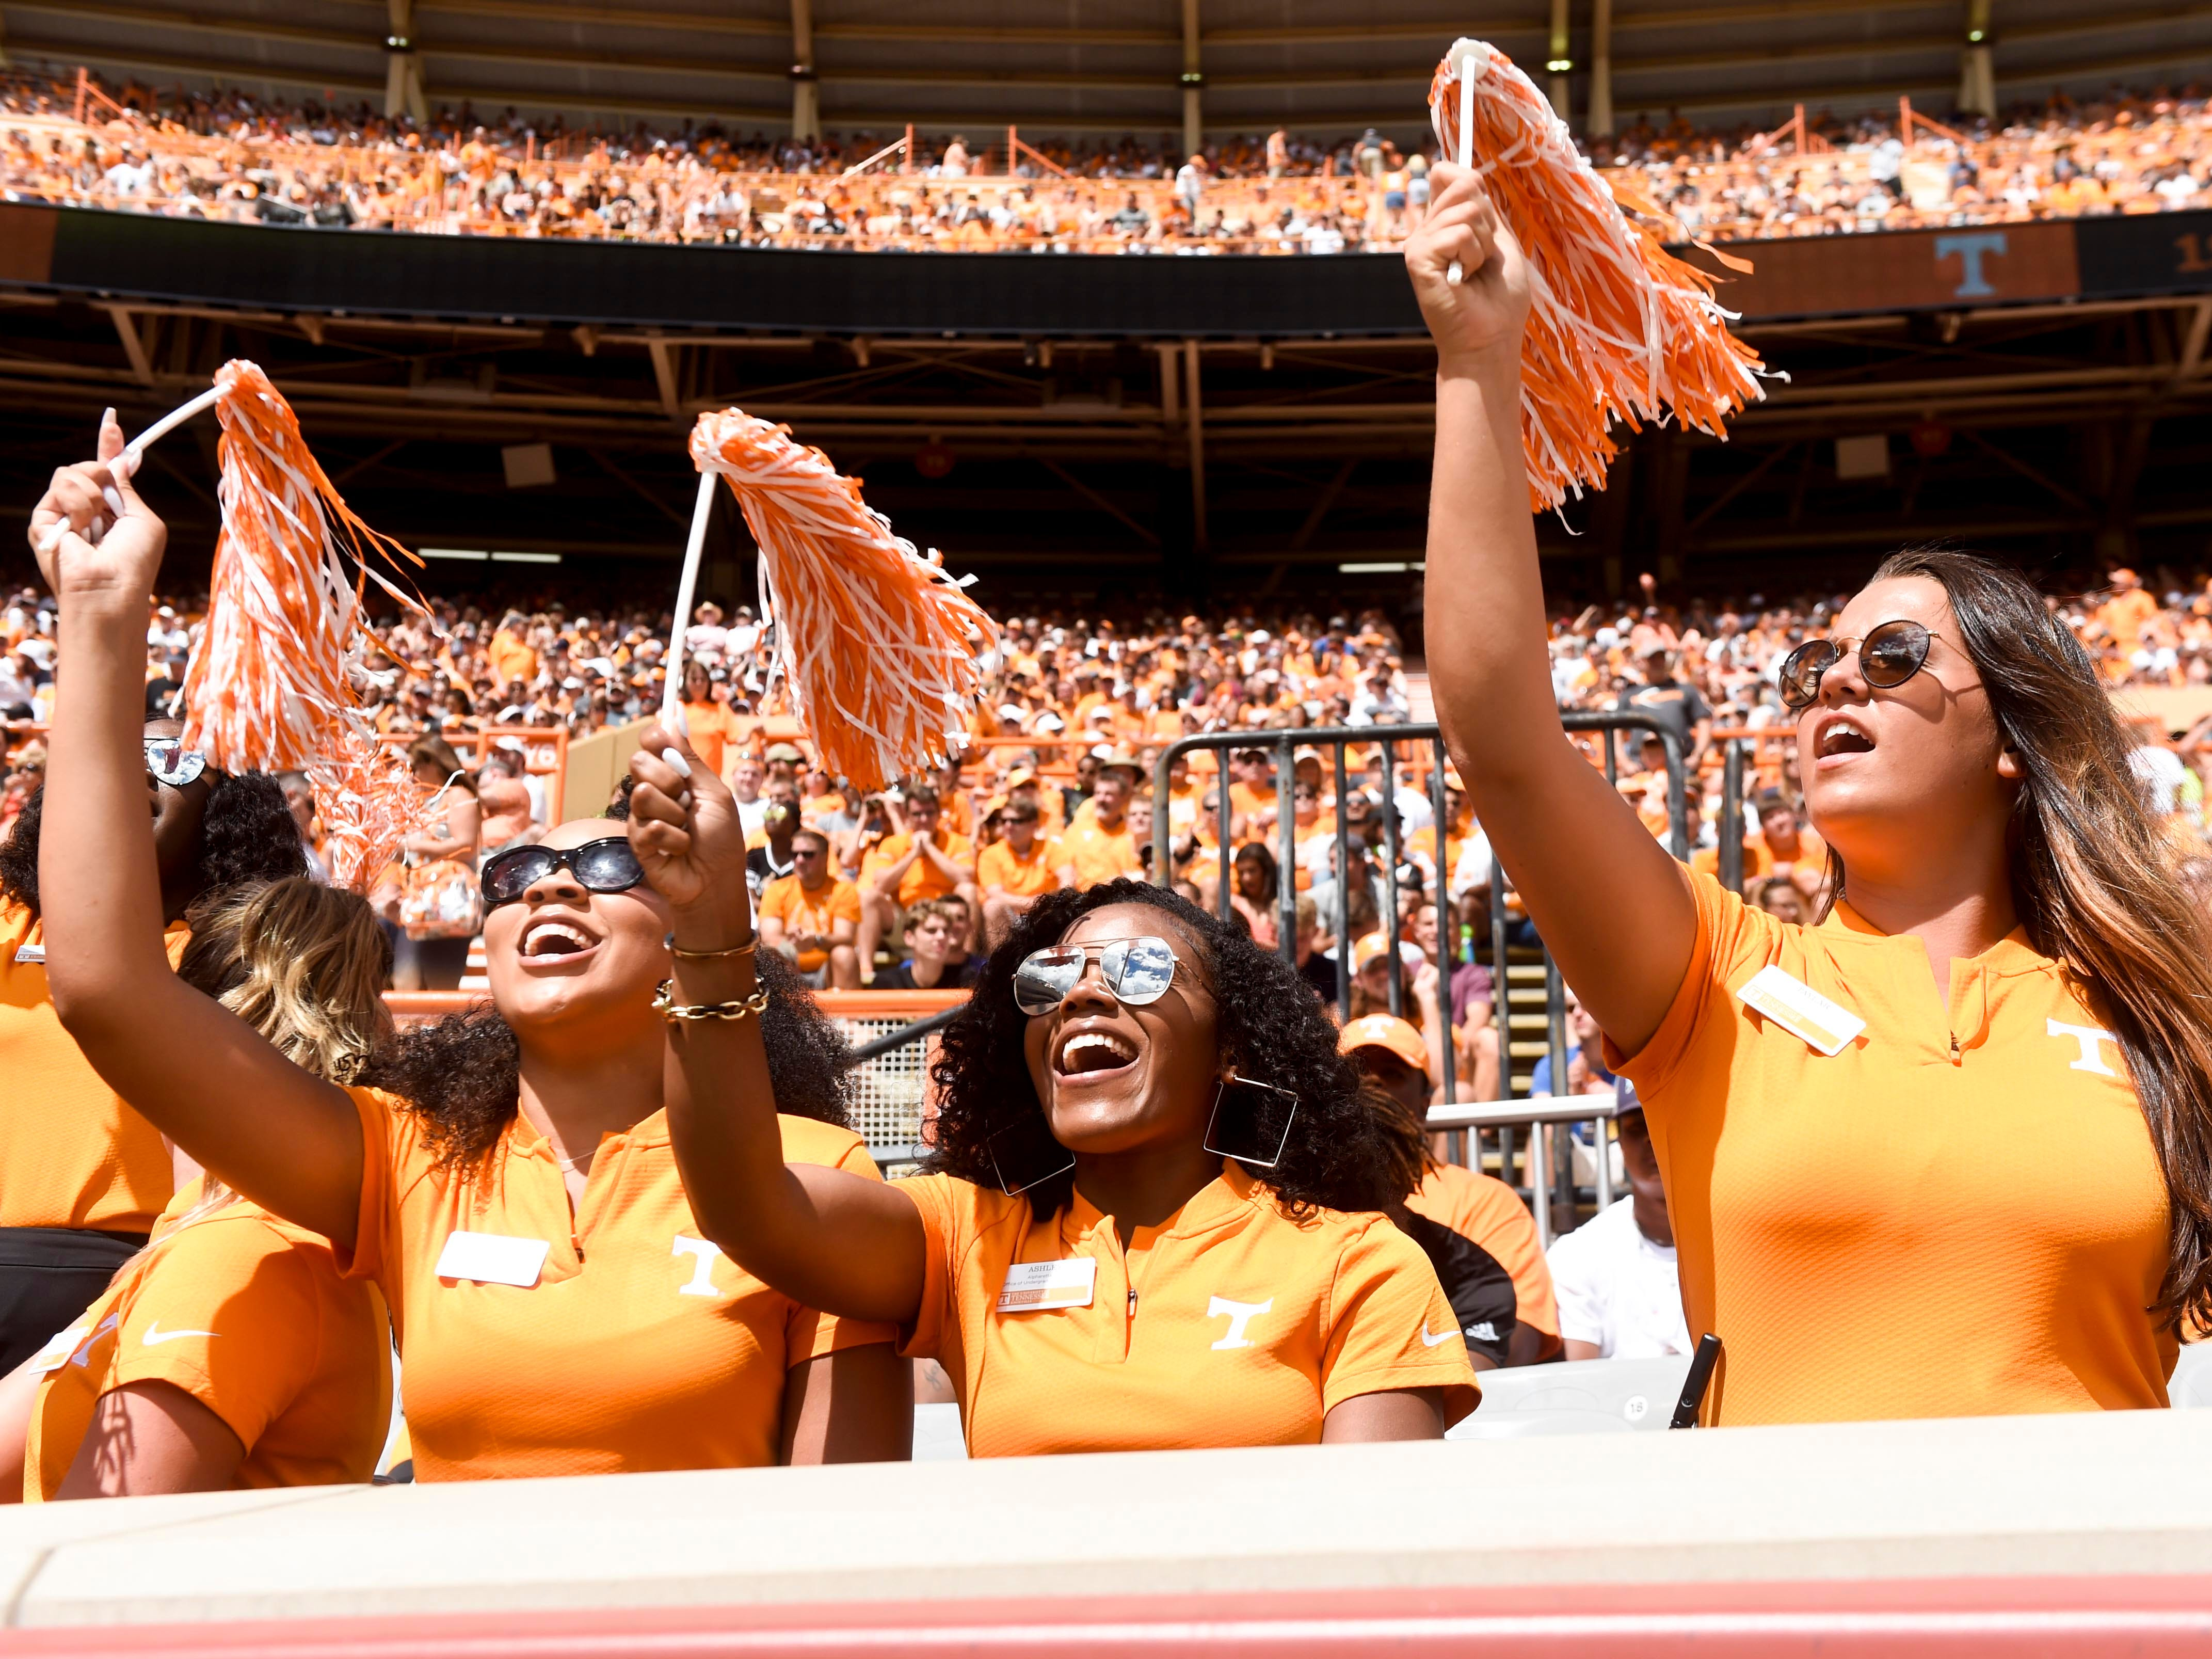 Tennessee fans cheer their team in the game against UTEP on Saturday, September 15, 2018.